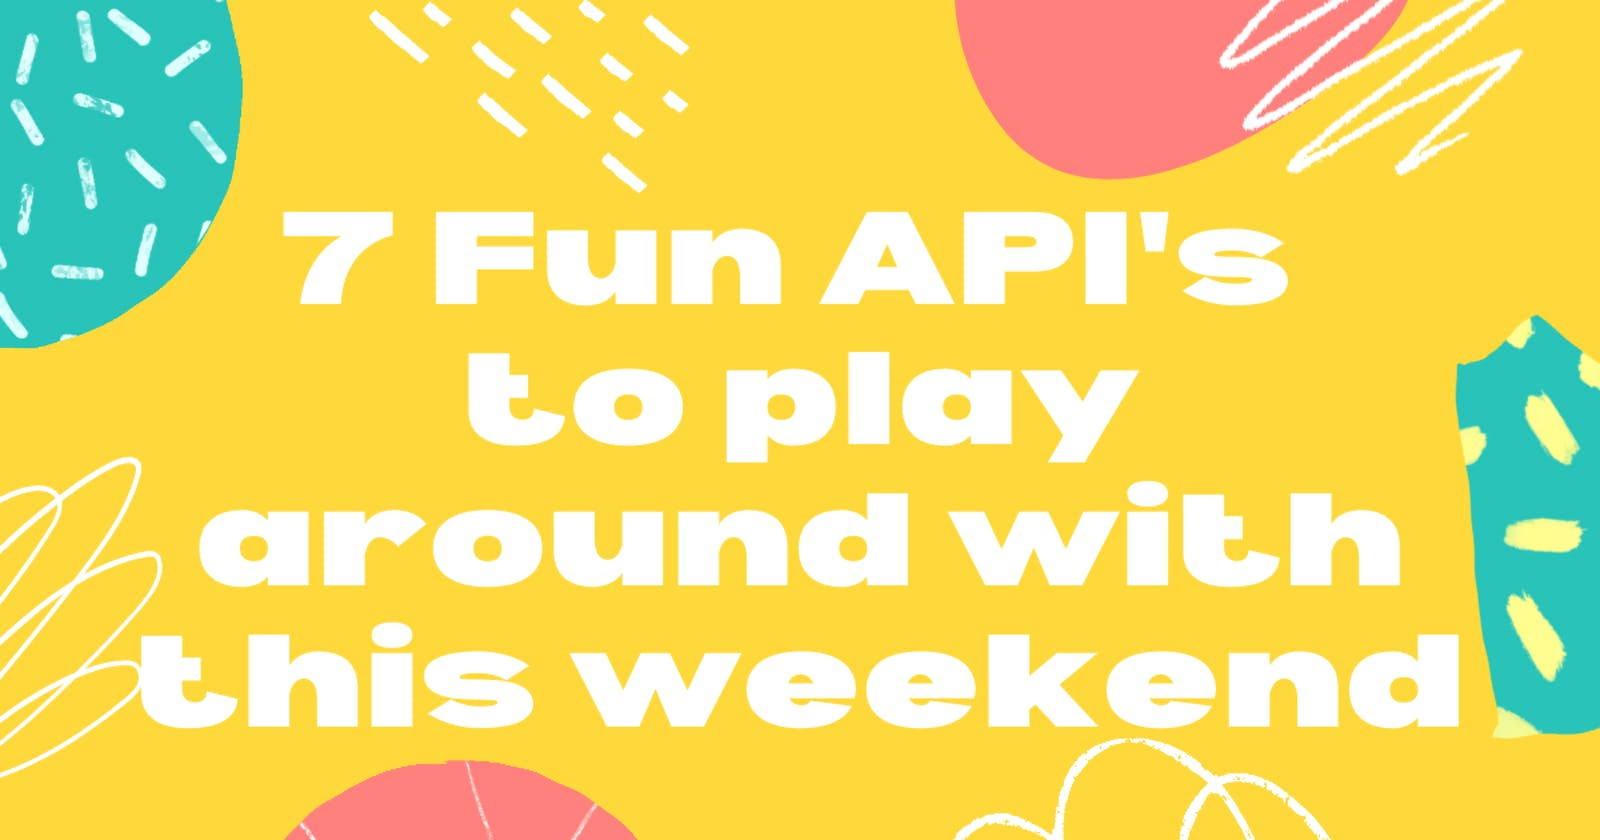 7 Fun API's to play around with this weekend!